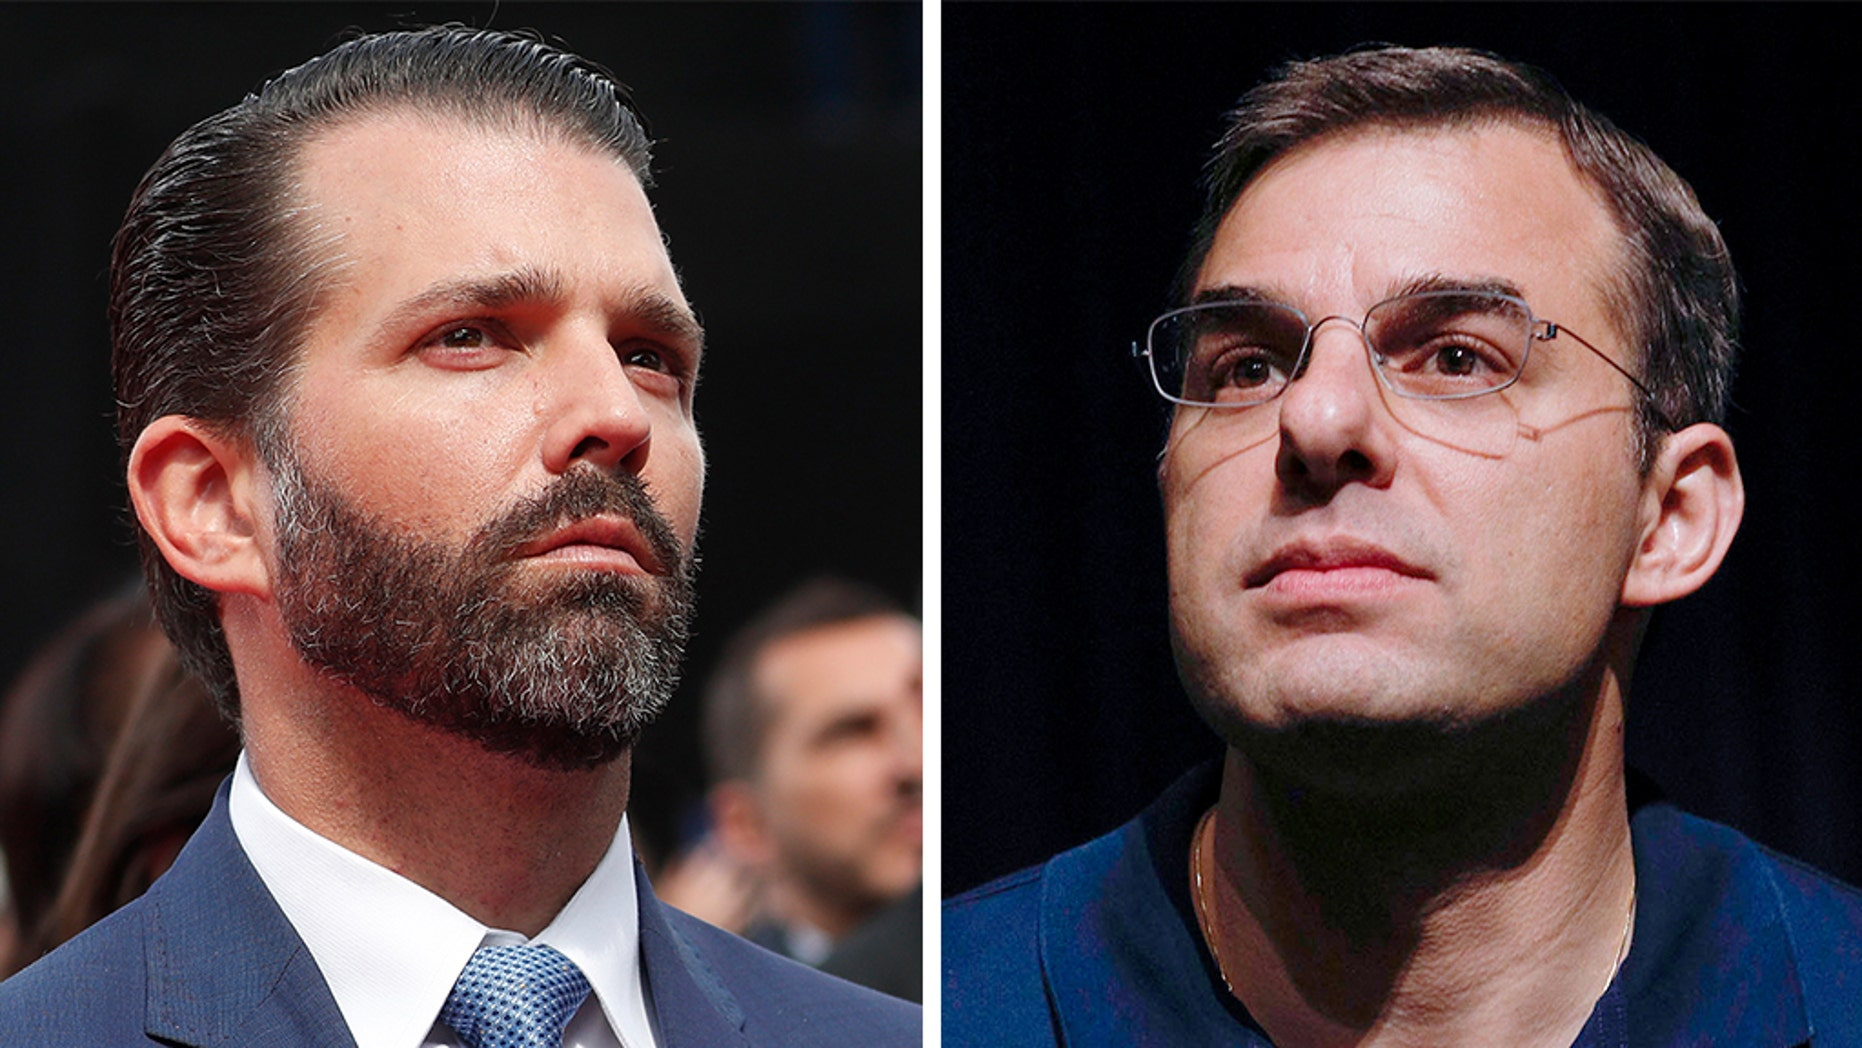 Donald Trump Jr. took on Republican Rep. Justin Amash on Twitter Thursday and pushed for aprimary challenge, after Amash became the first GOP House member to call for the impeachment of President Trump.<br>